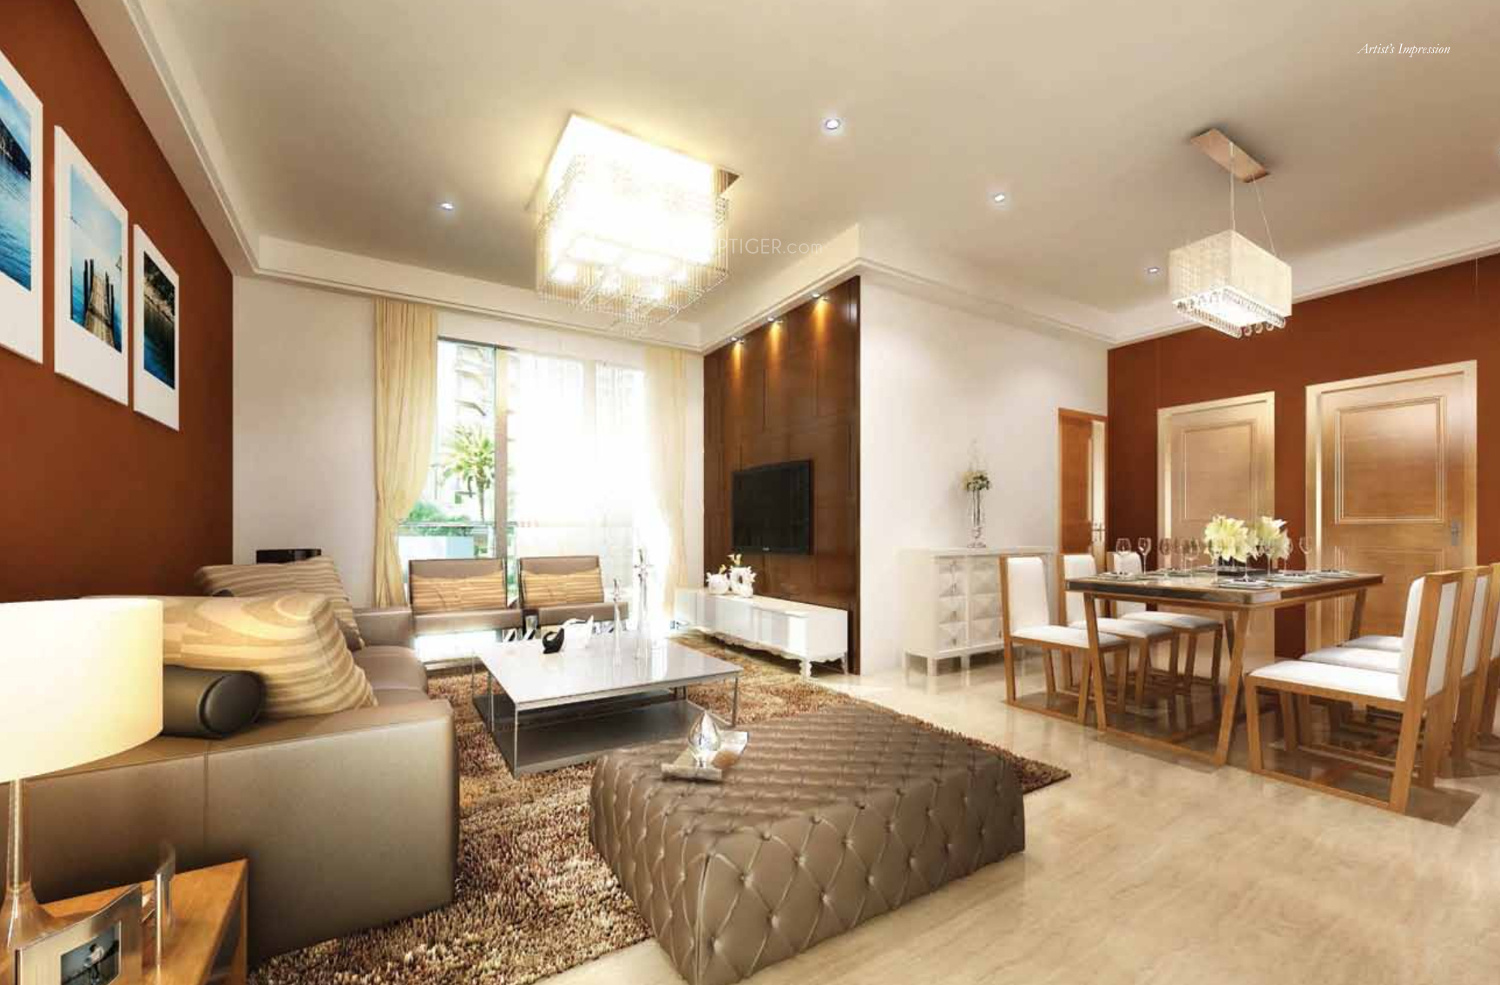 1385 Sq Ft 2 BHK 2T Apartment For Sale In Prestige Group Pinewood Koramangala Bangalore